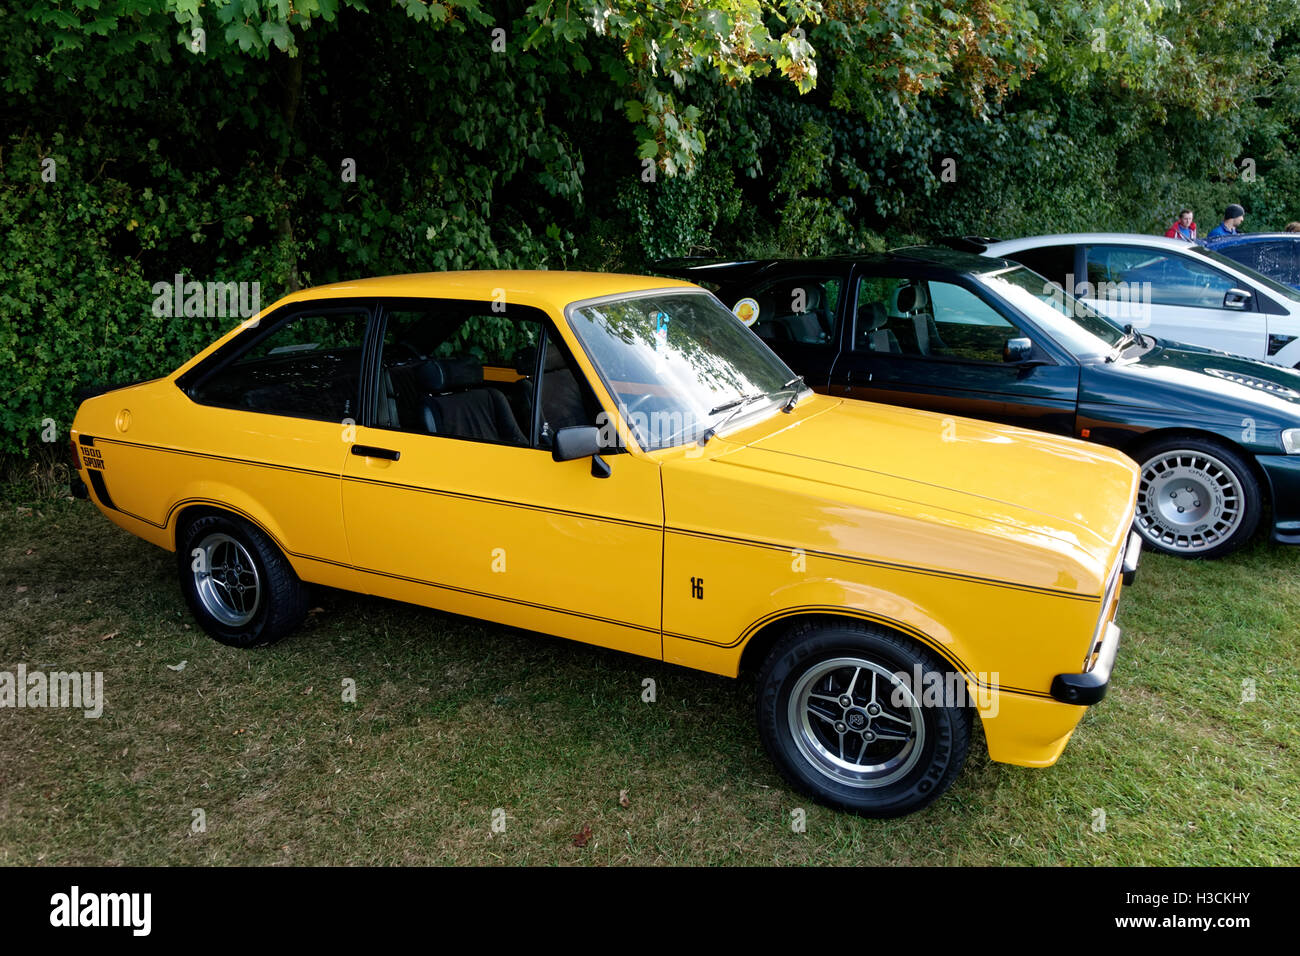 A Ford Escort 1600 Sport motor car, MDD 436P, at the Castle Combe Rallyday 2016, Wiltshire, United Kingdom. - Stock Image